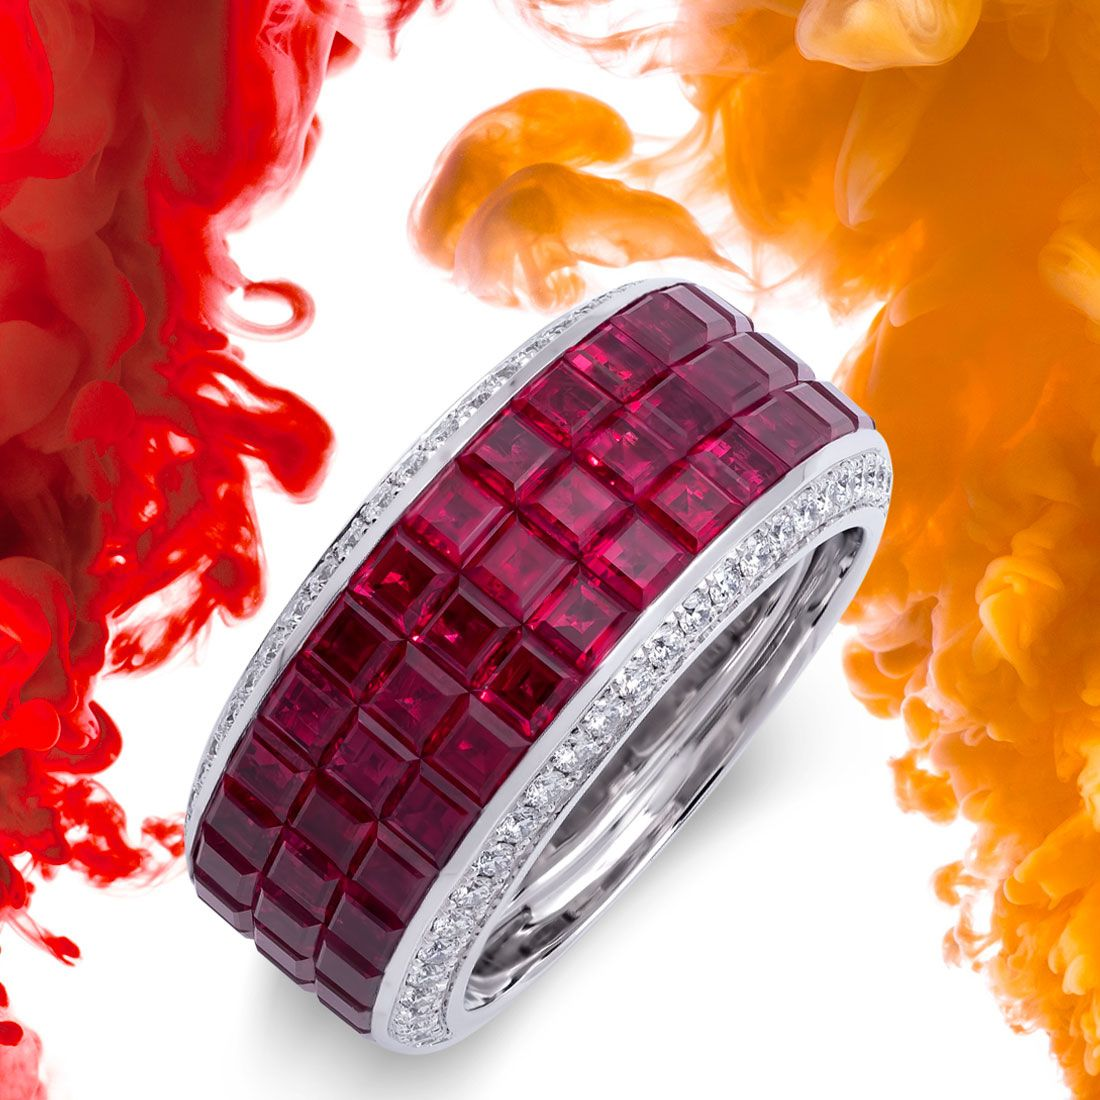 Experience the luxury and opulence with the Classical collection.  Sublime balance of spirit and form. Geometrical and classical shapes make a statement with masterful invisible setting volumes.  . . . . . #rings #cocktailring #invisiblesetting #ruby #rubies #diamondjewelry  #luxuryjewelry #highjewelry #ilovejewelry